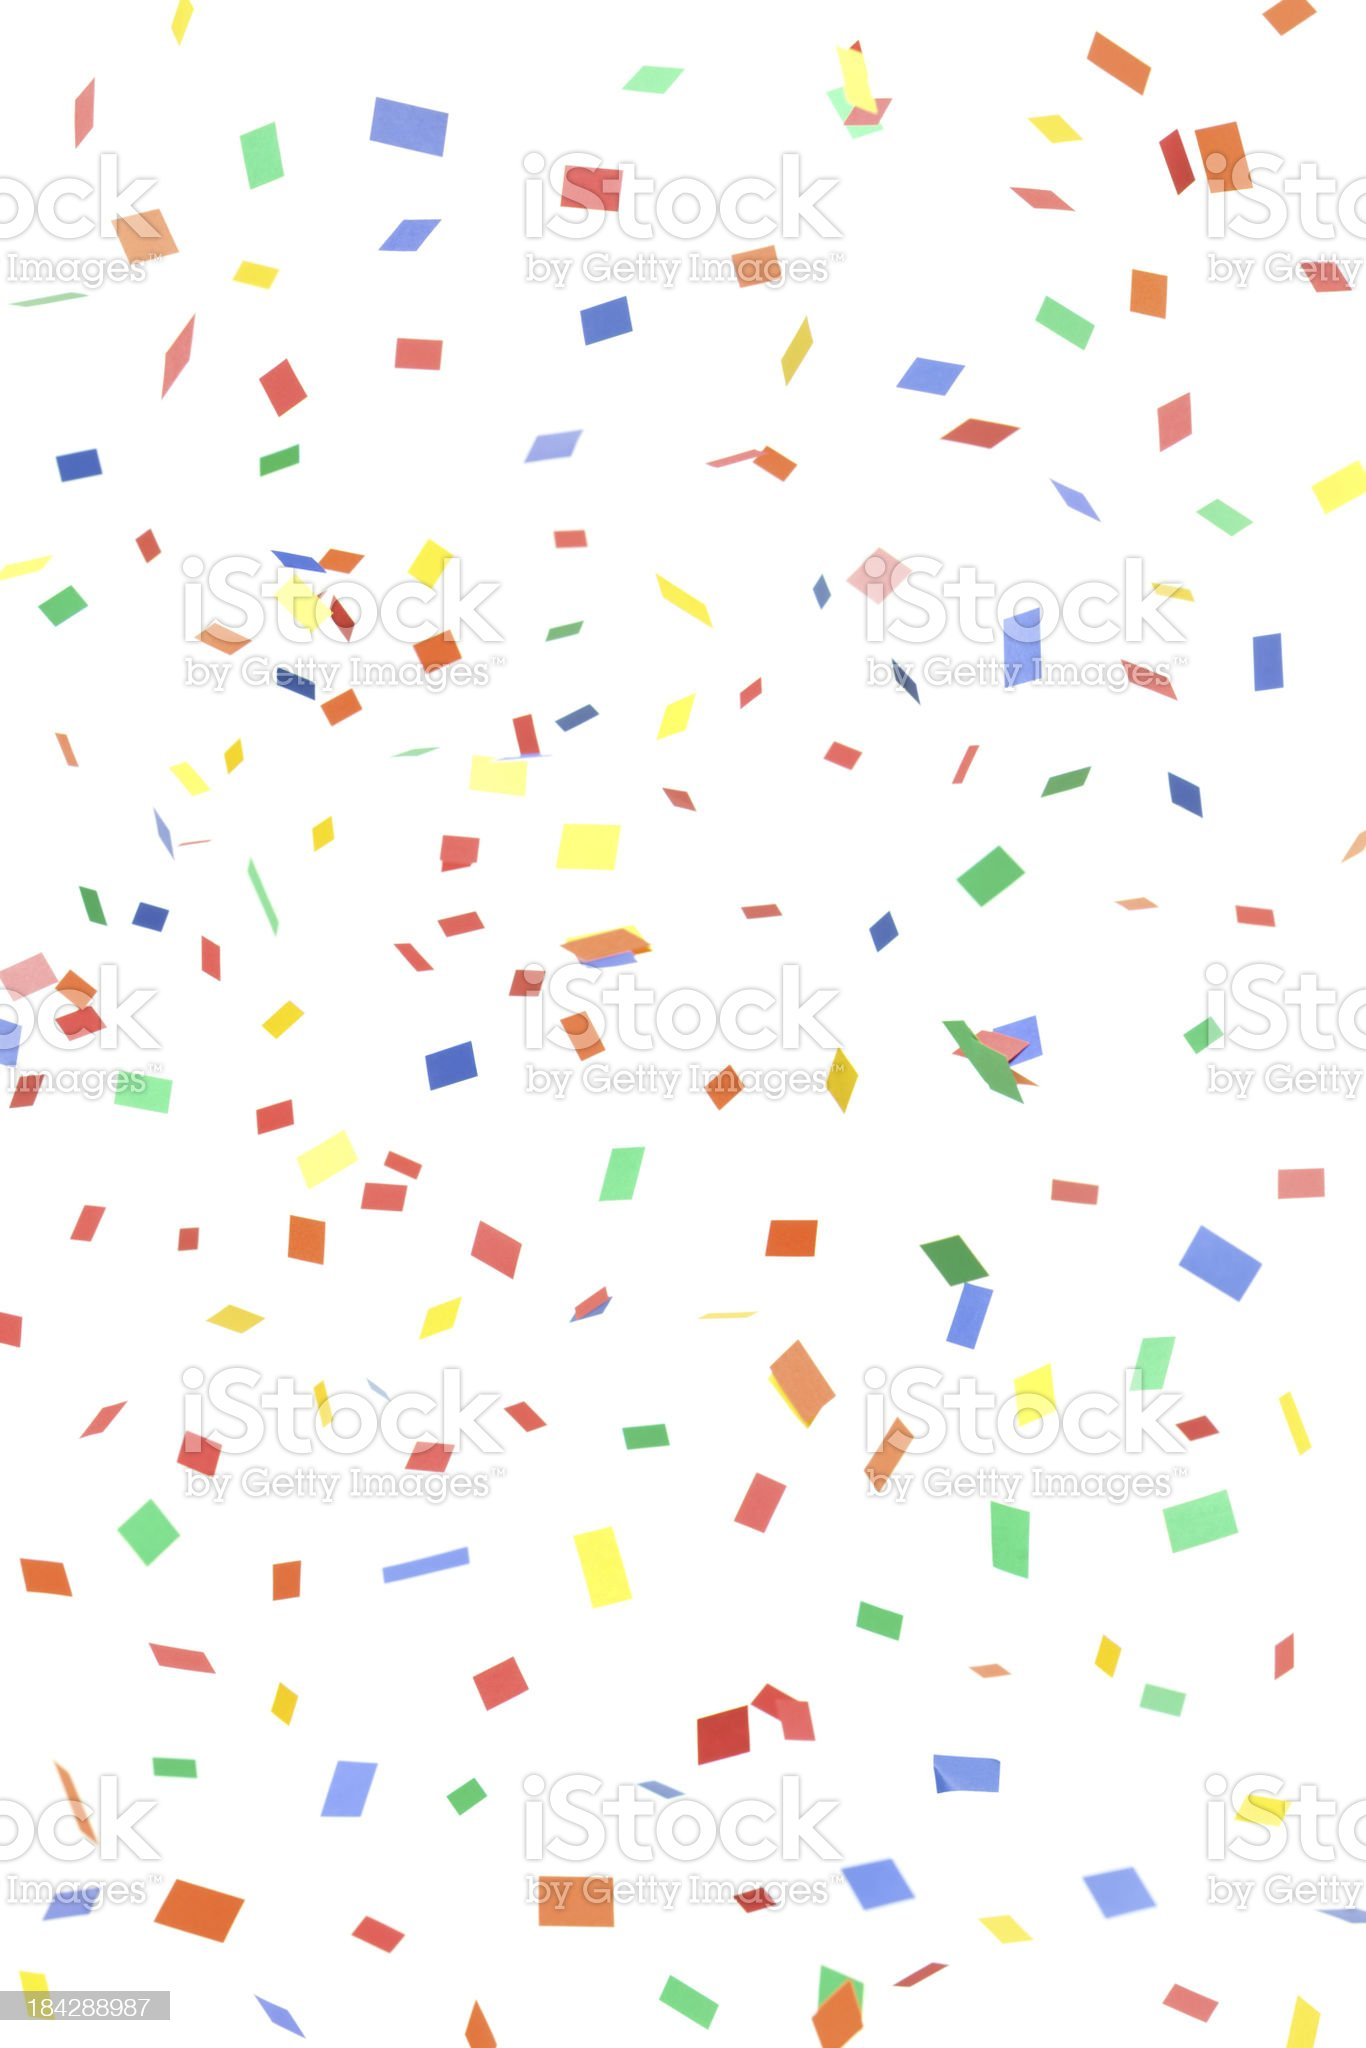 Paper Confetti Rectangles and Squares Falling, Isolated on White royalty-free stock photo